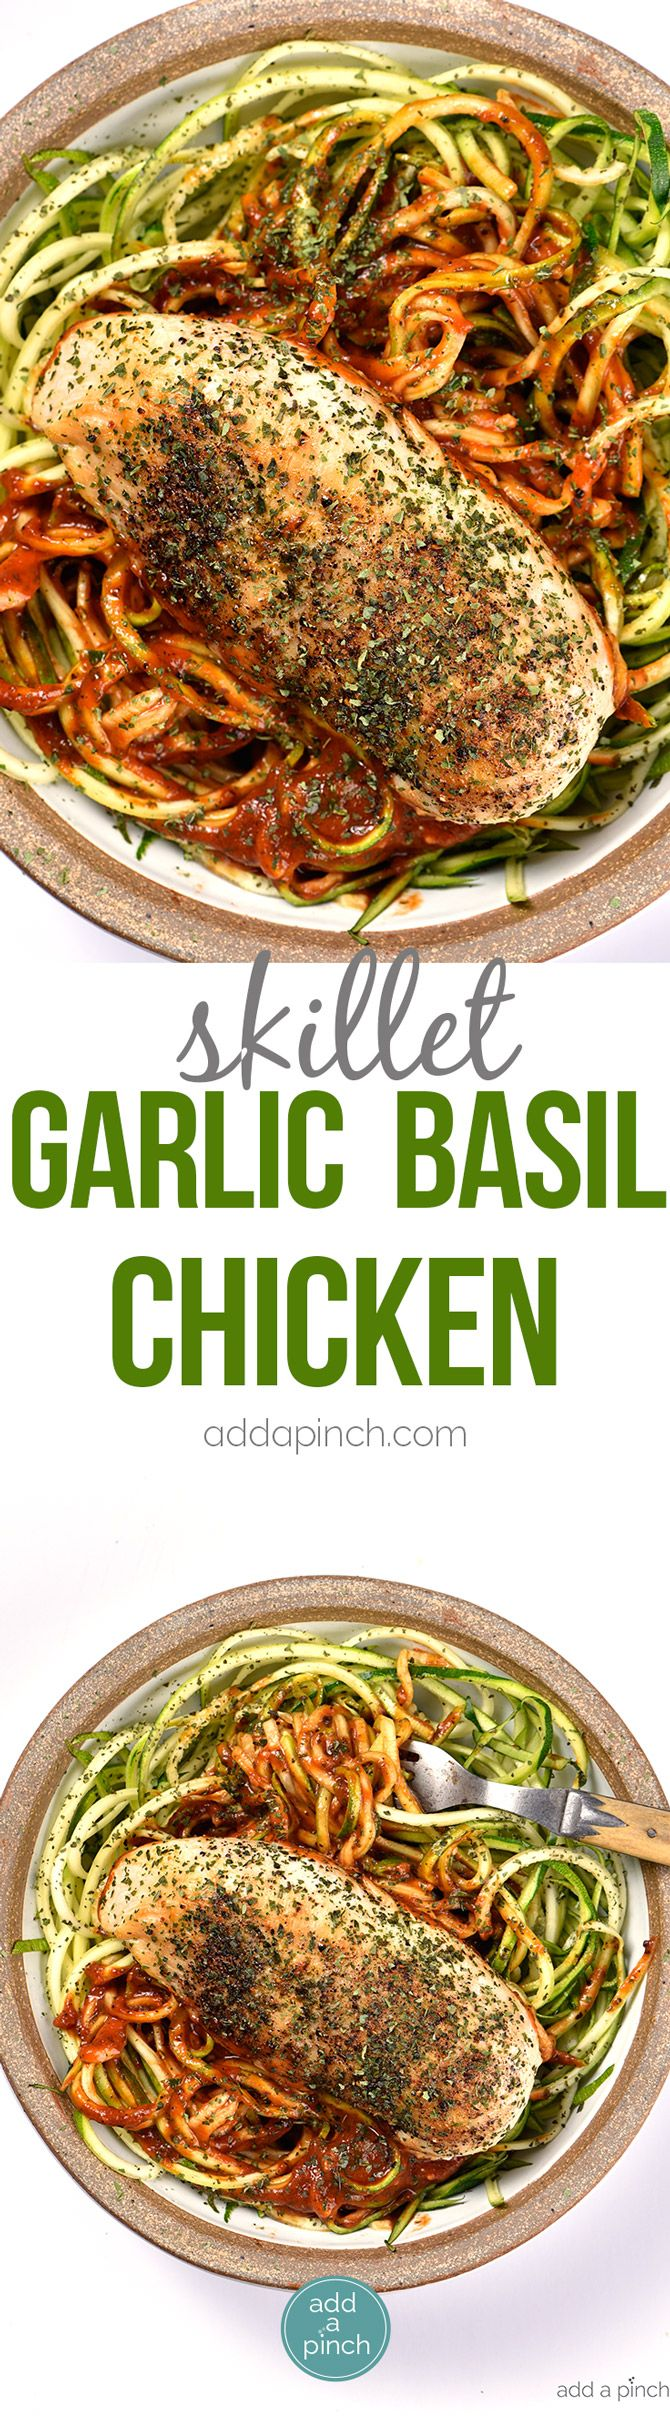 Skillets, The o'jays and Garlic basil chicken on Pinterest